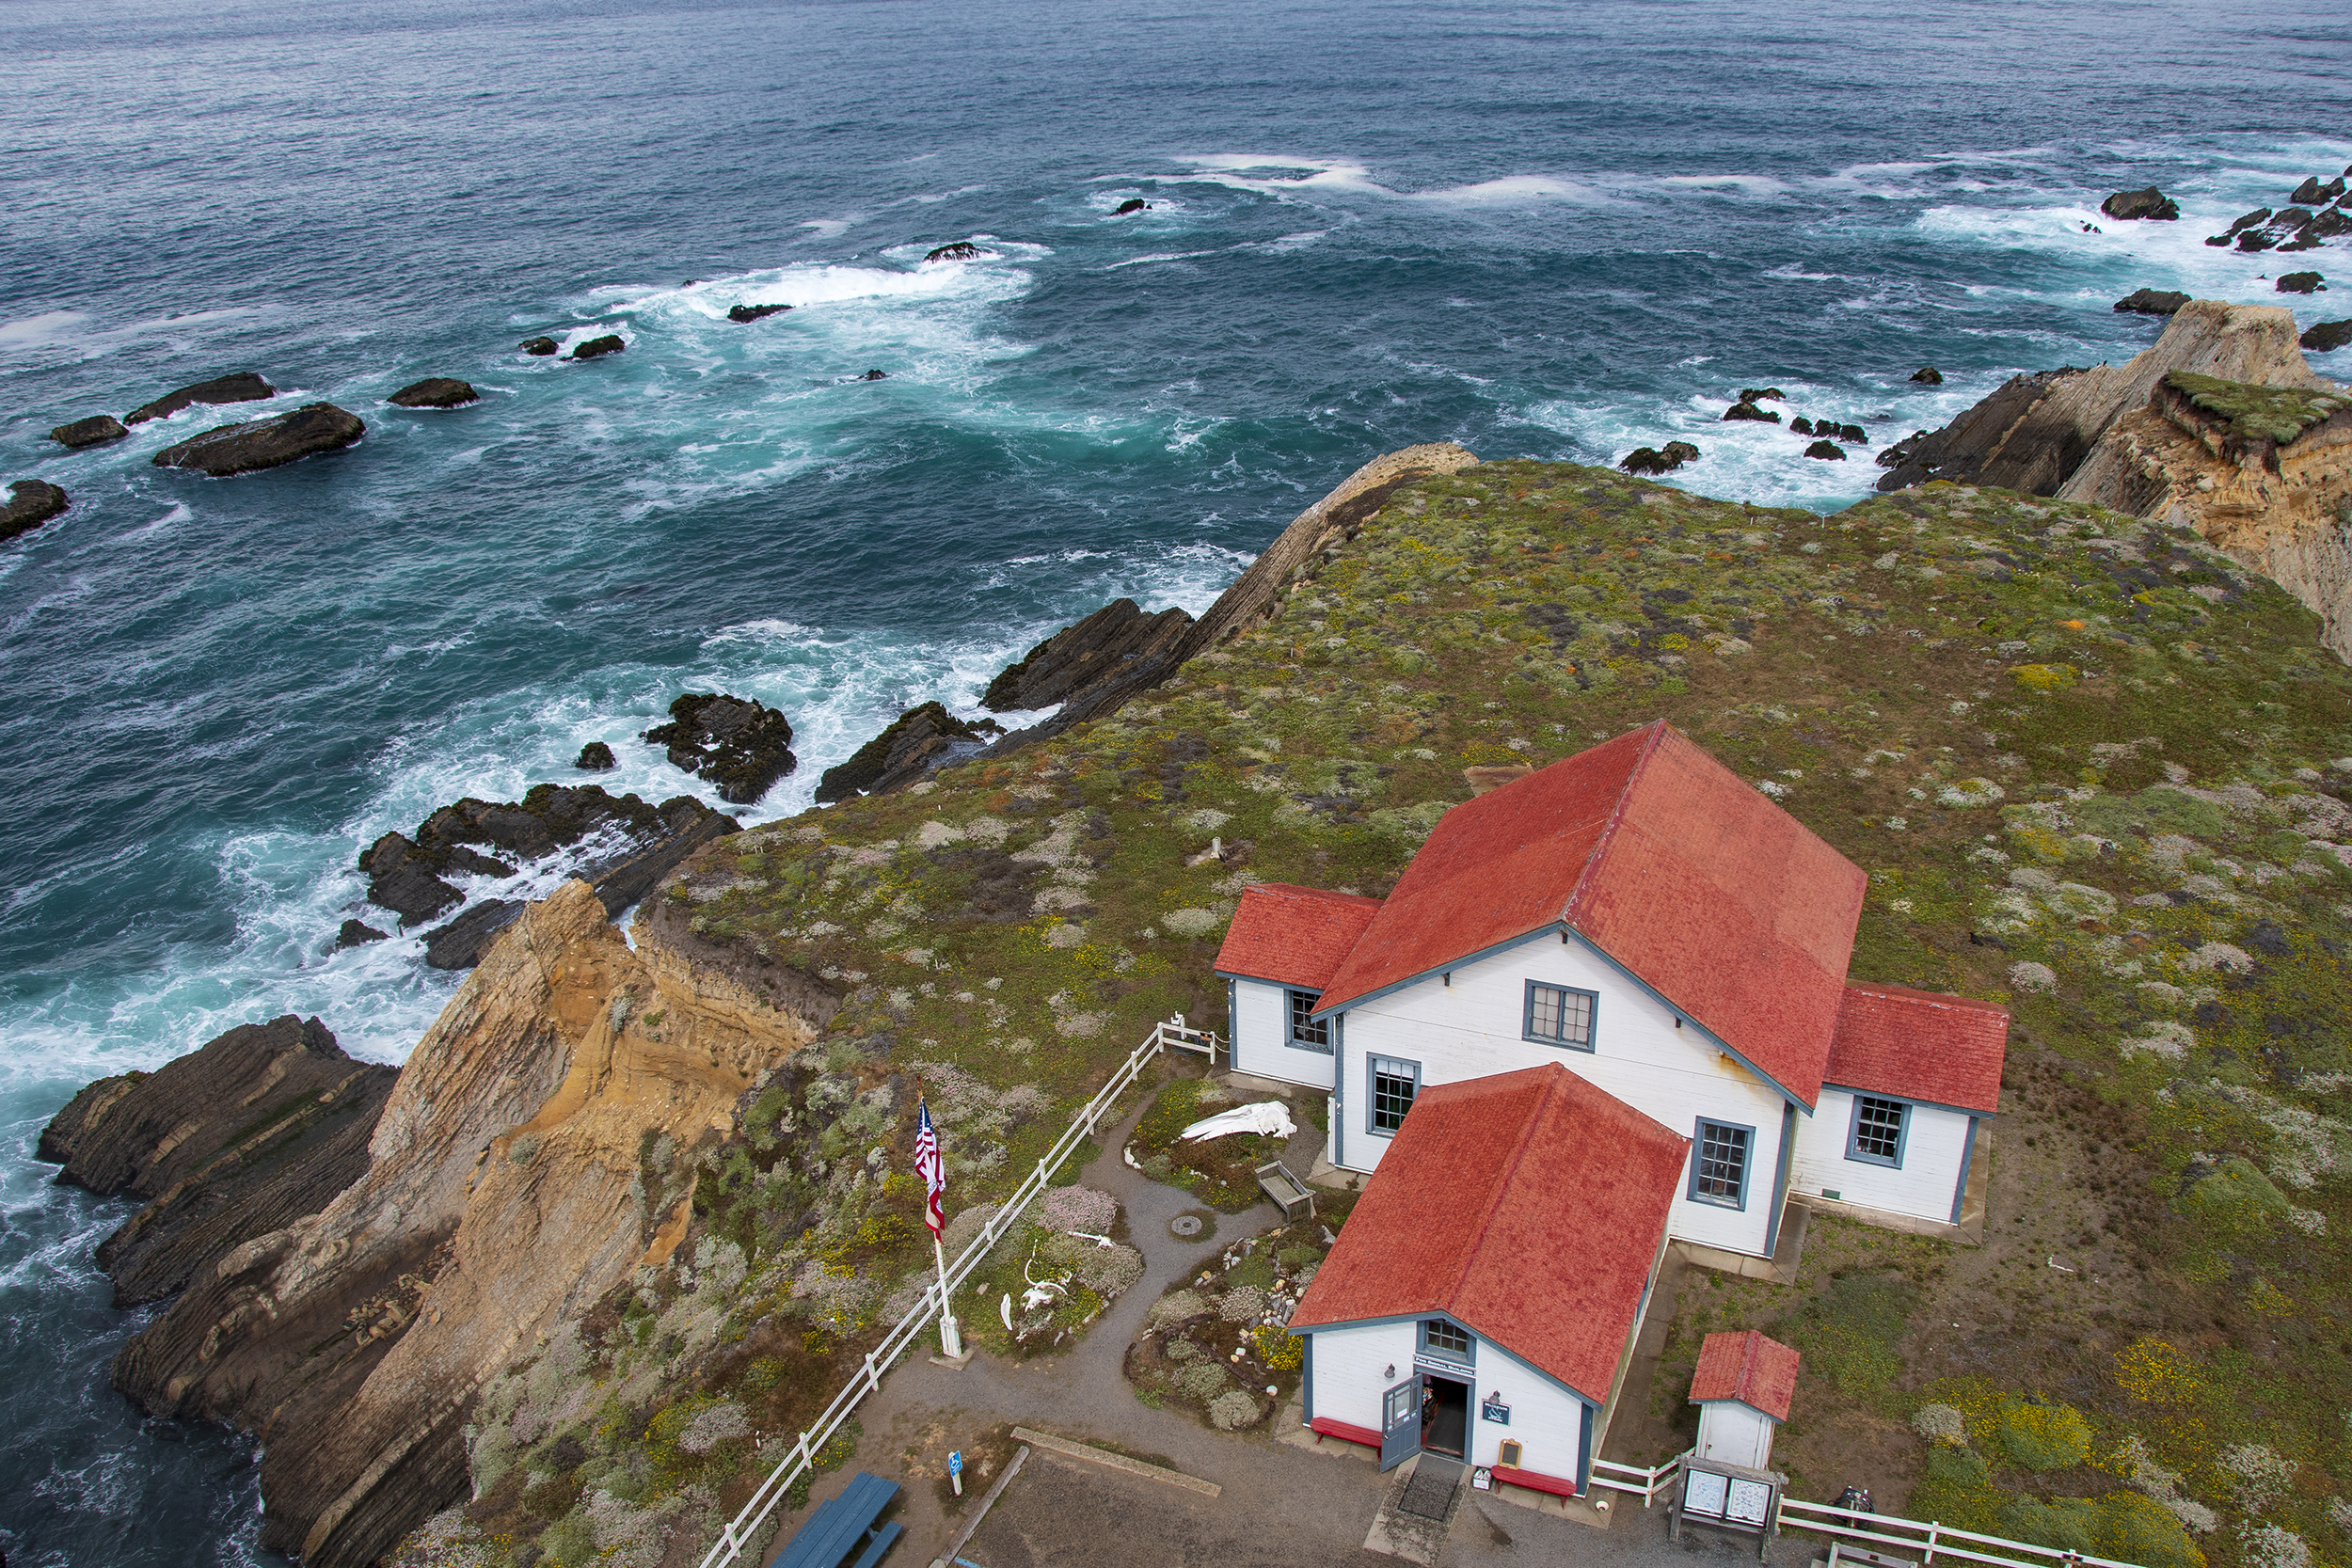 point arena lighthouse museum och hav